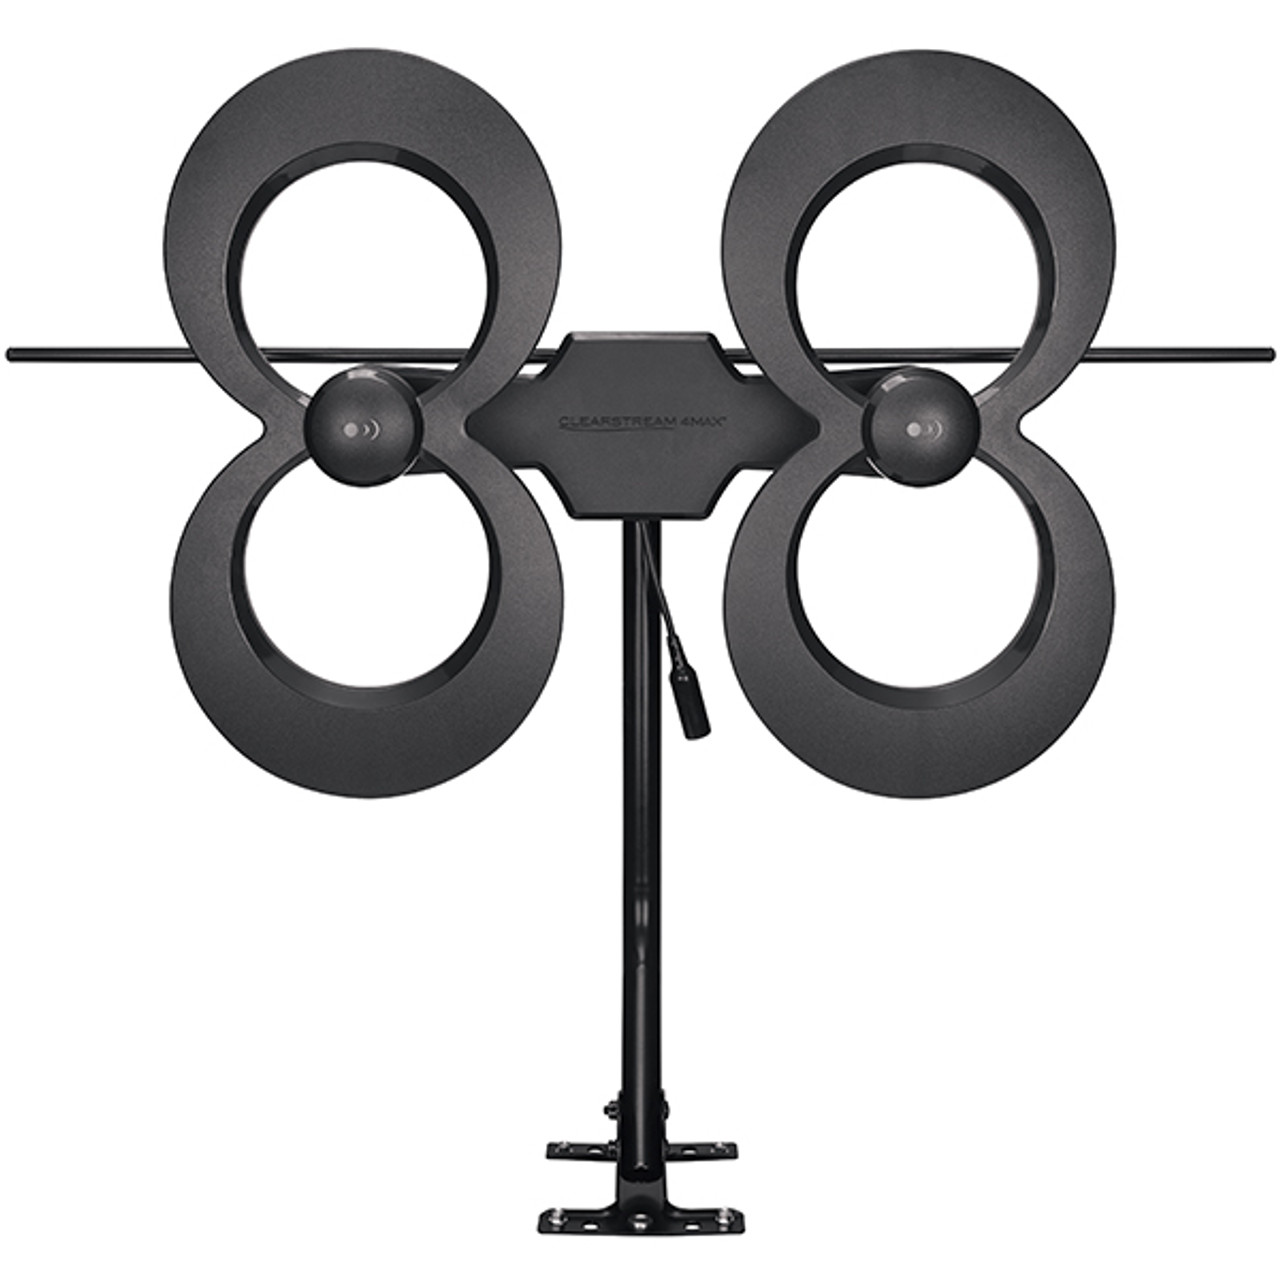 ClearStream 4MAX® UHF/VHF Indoor/Outdoor HDTV Antenna with 20